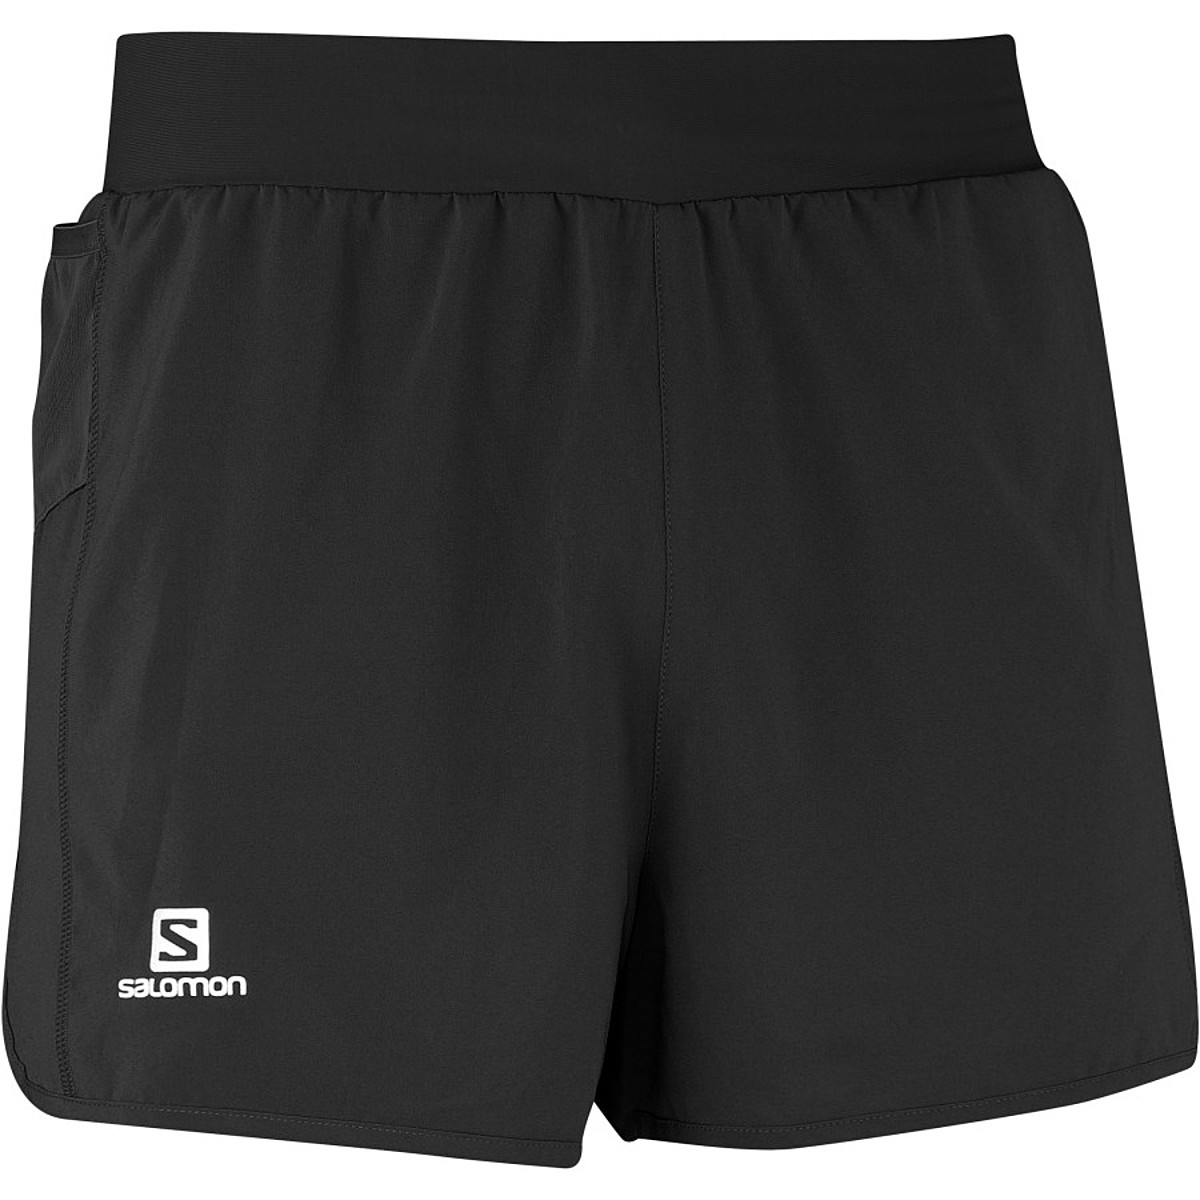 Salomon Light Short